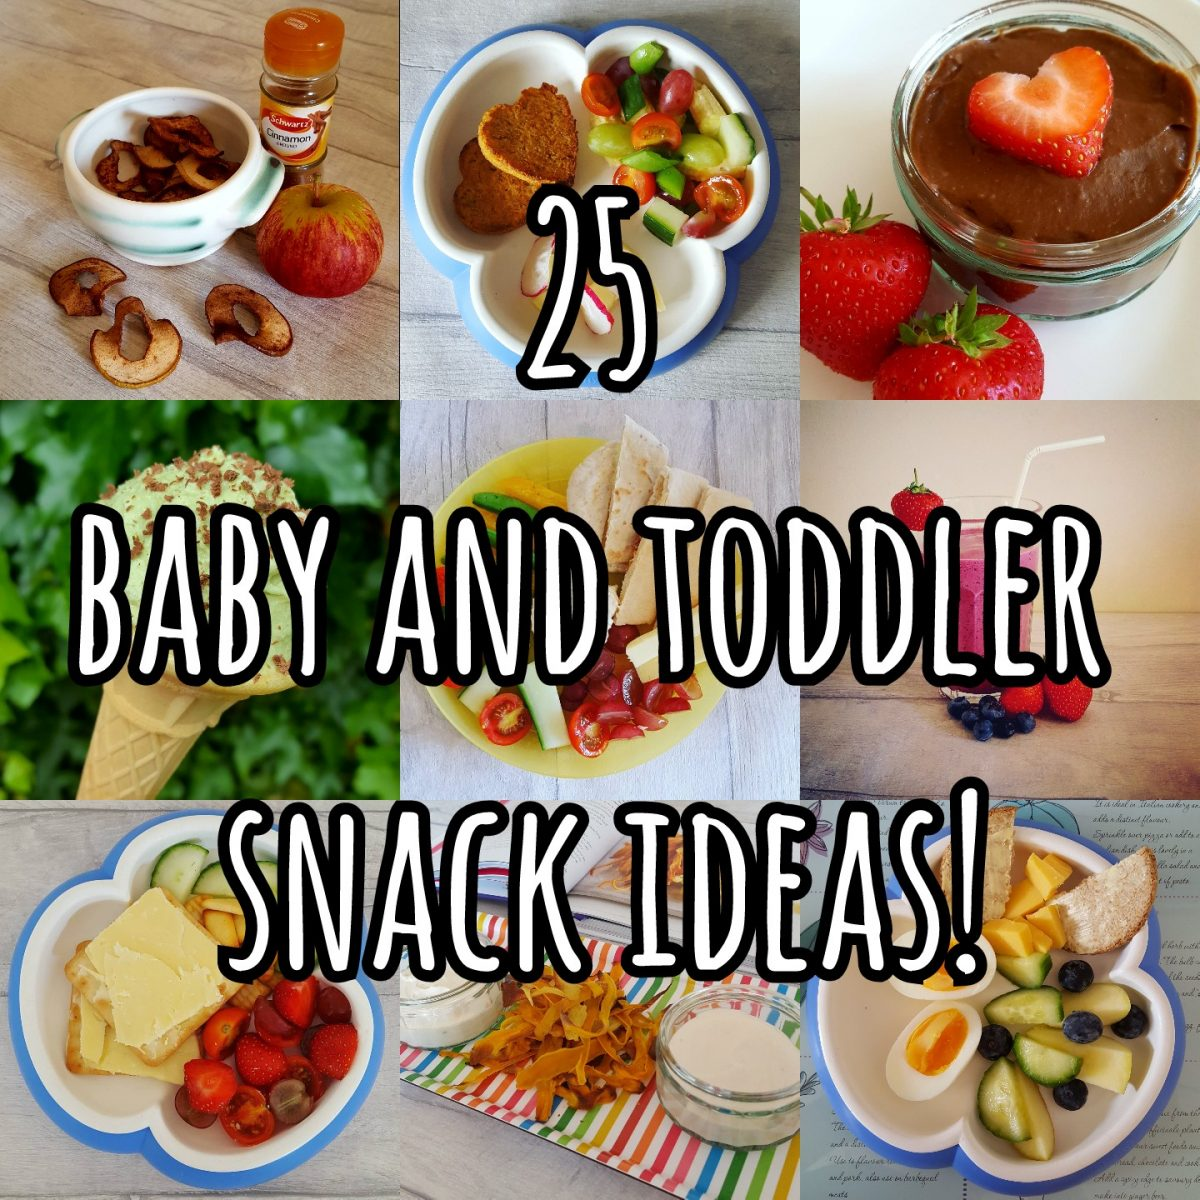 25 Baby and toddler snack ideas